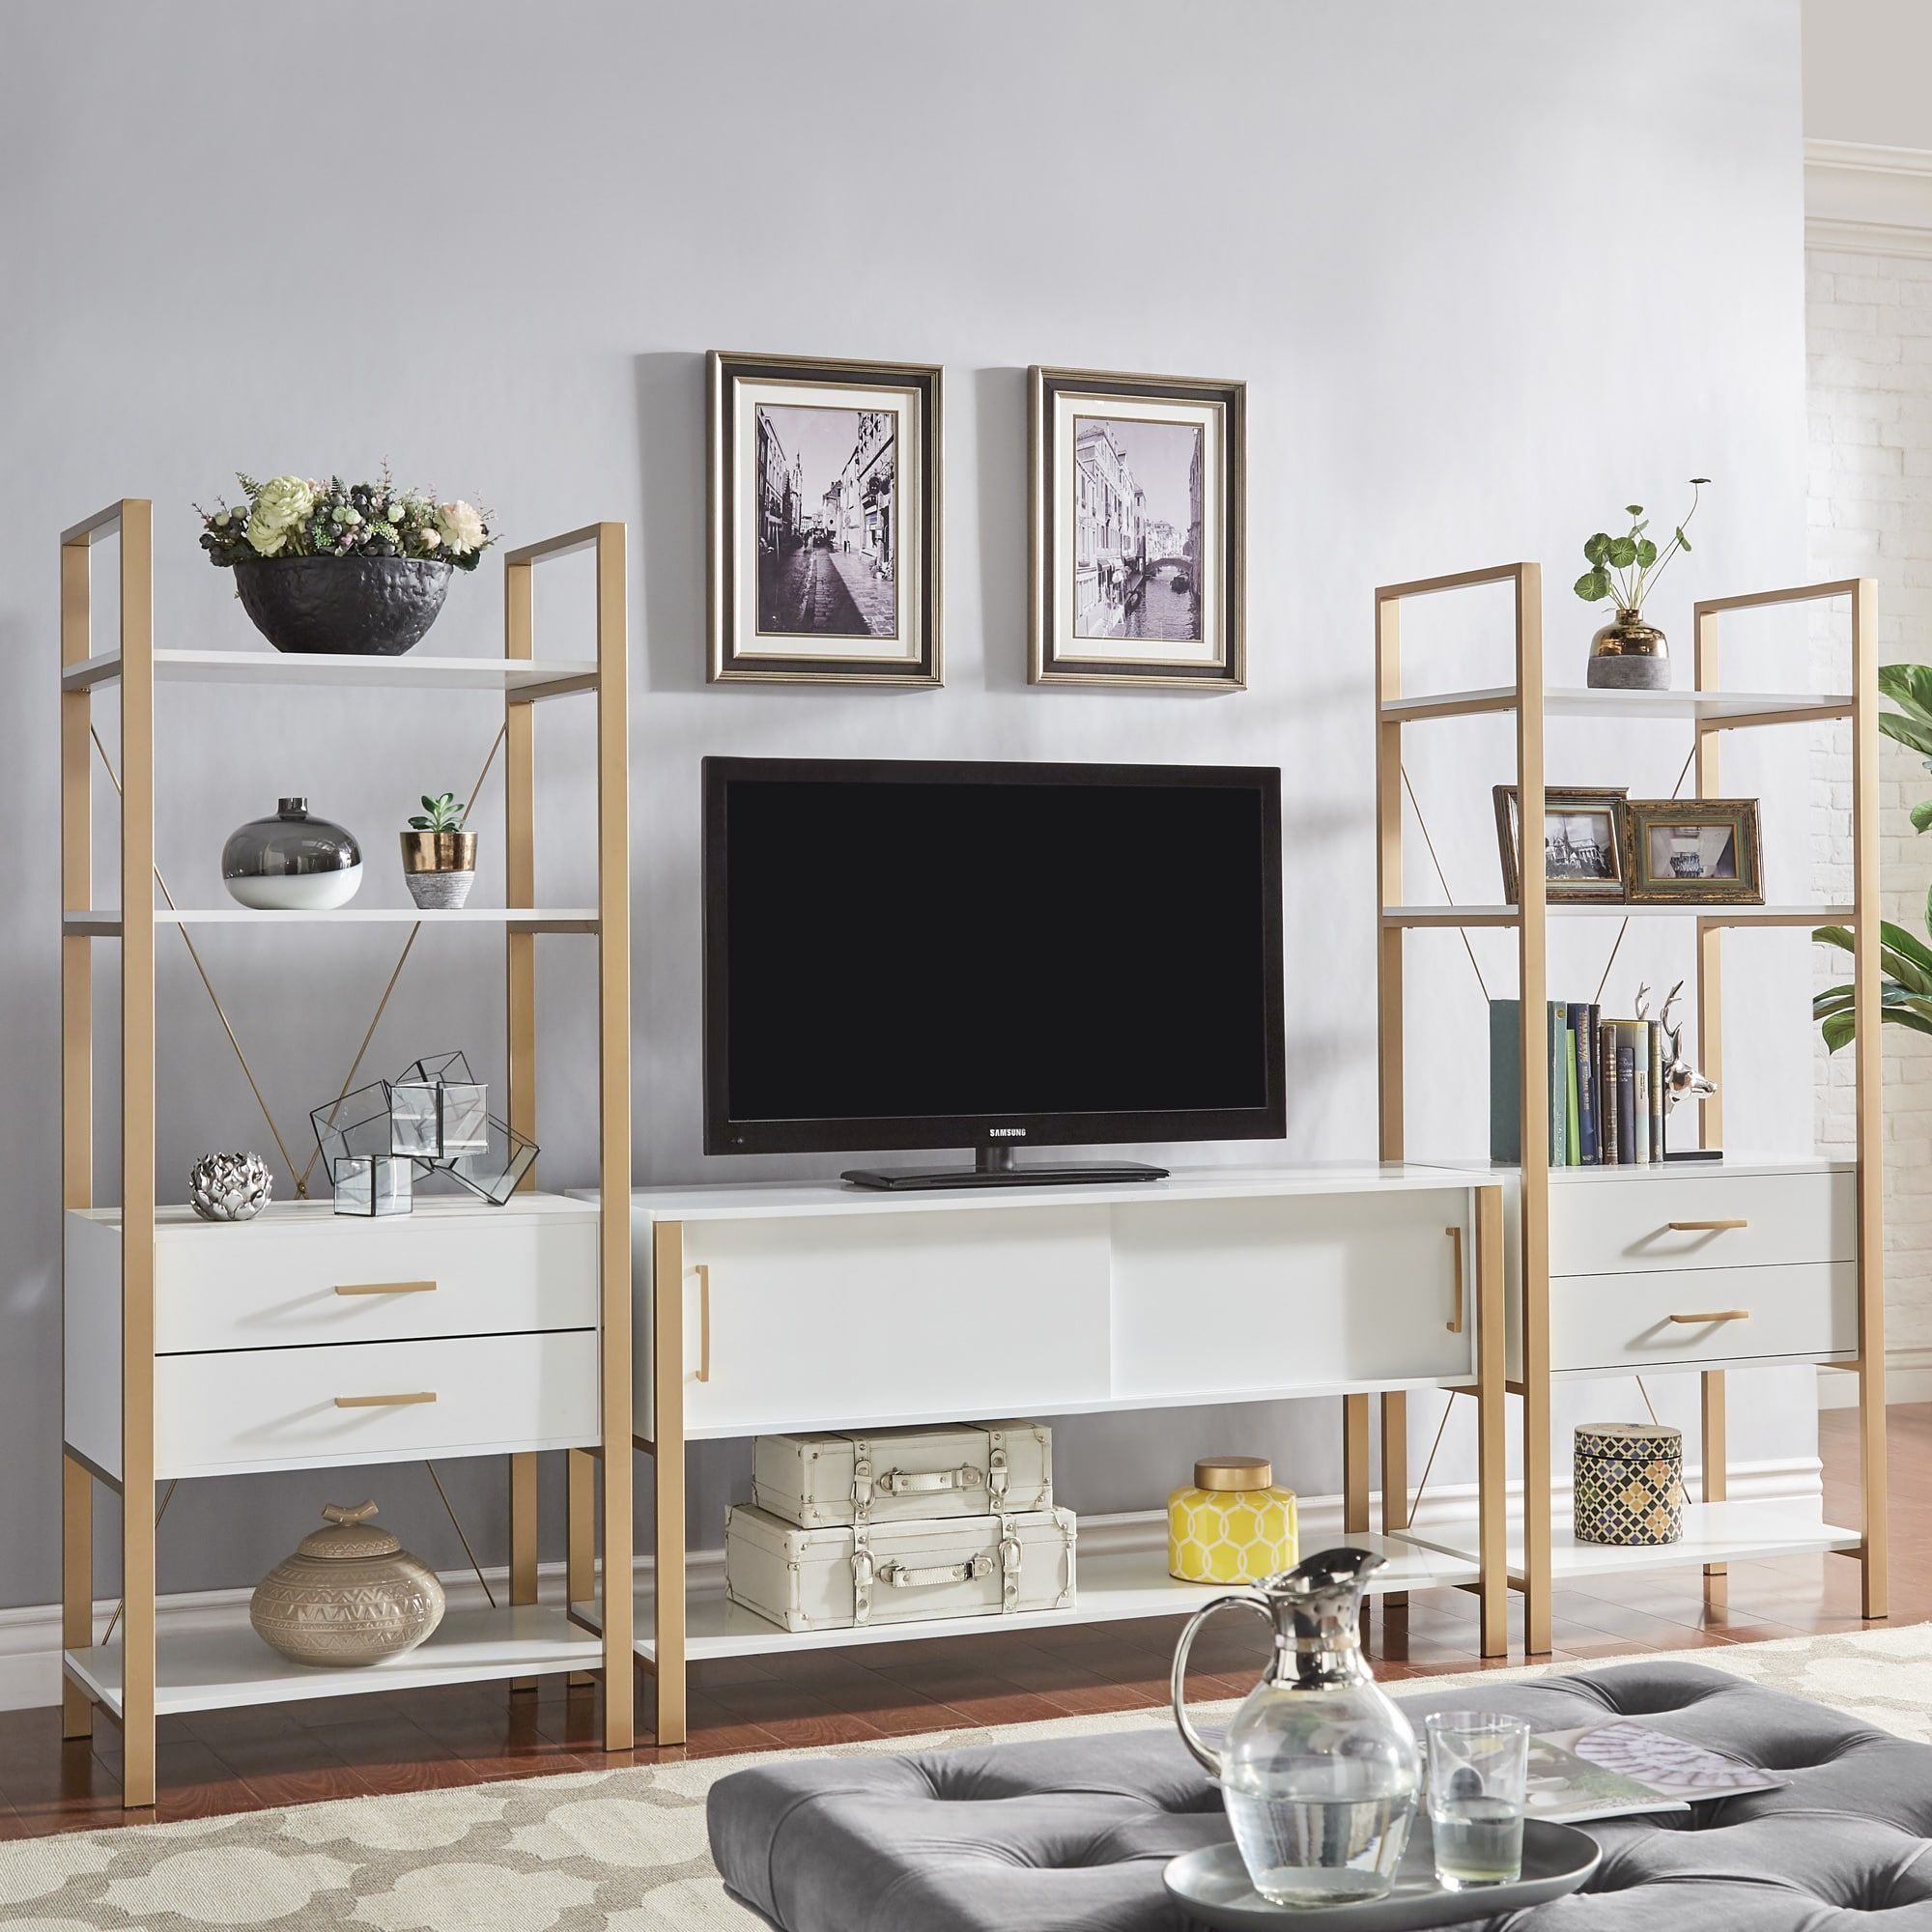 Our Best Living Room Furniture Deals Living Room Entertainment Center Living Room Entertainment Entertainment Center